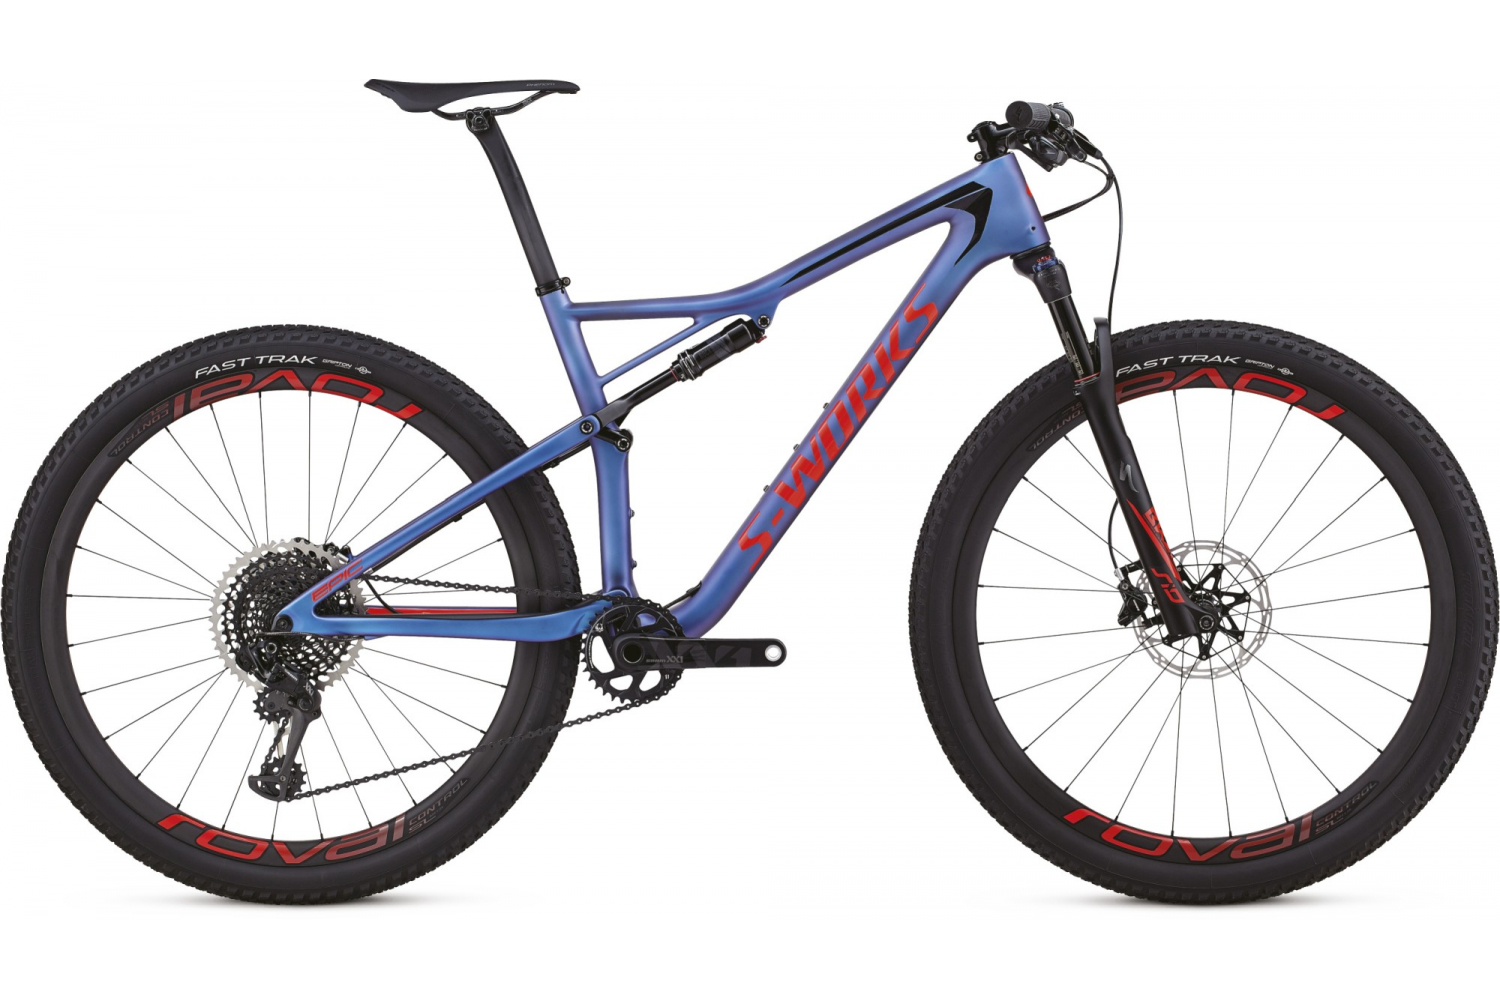 S-WORKS горные велосипеды Specialized S-Works Epic XX1 EAGLE 29 Men 2018 Артикул 90318-0302, 90318-0303, 90318-0304, 90318-0305, 90318-0202, 90318-0203, 90318-0204, 90318-0205